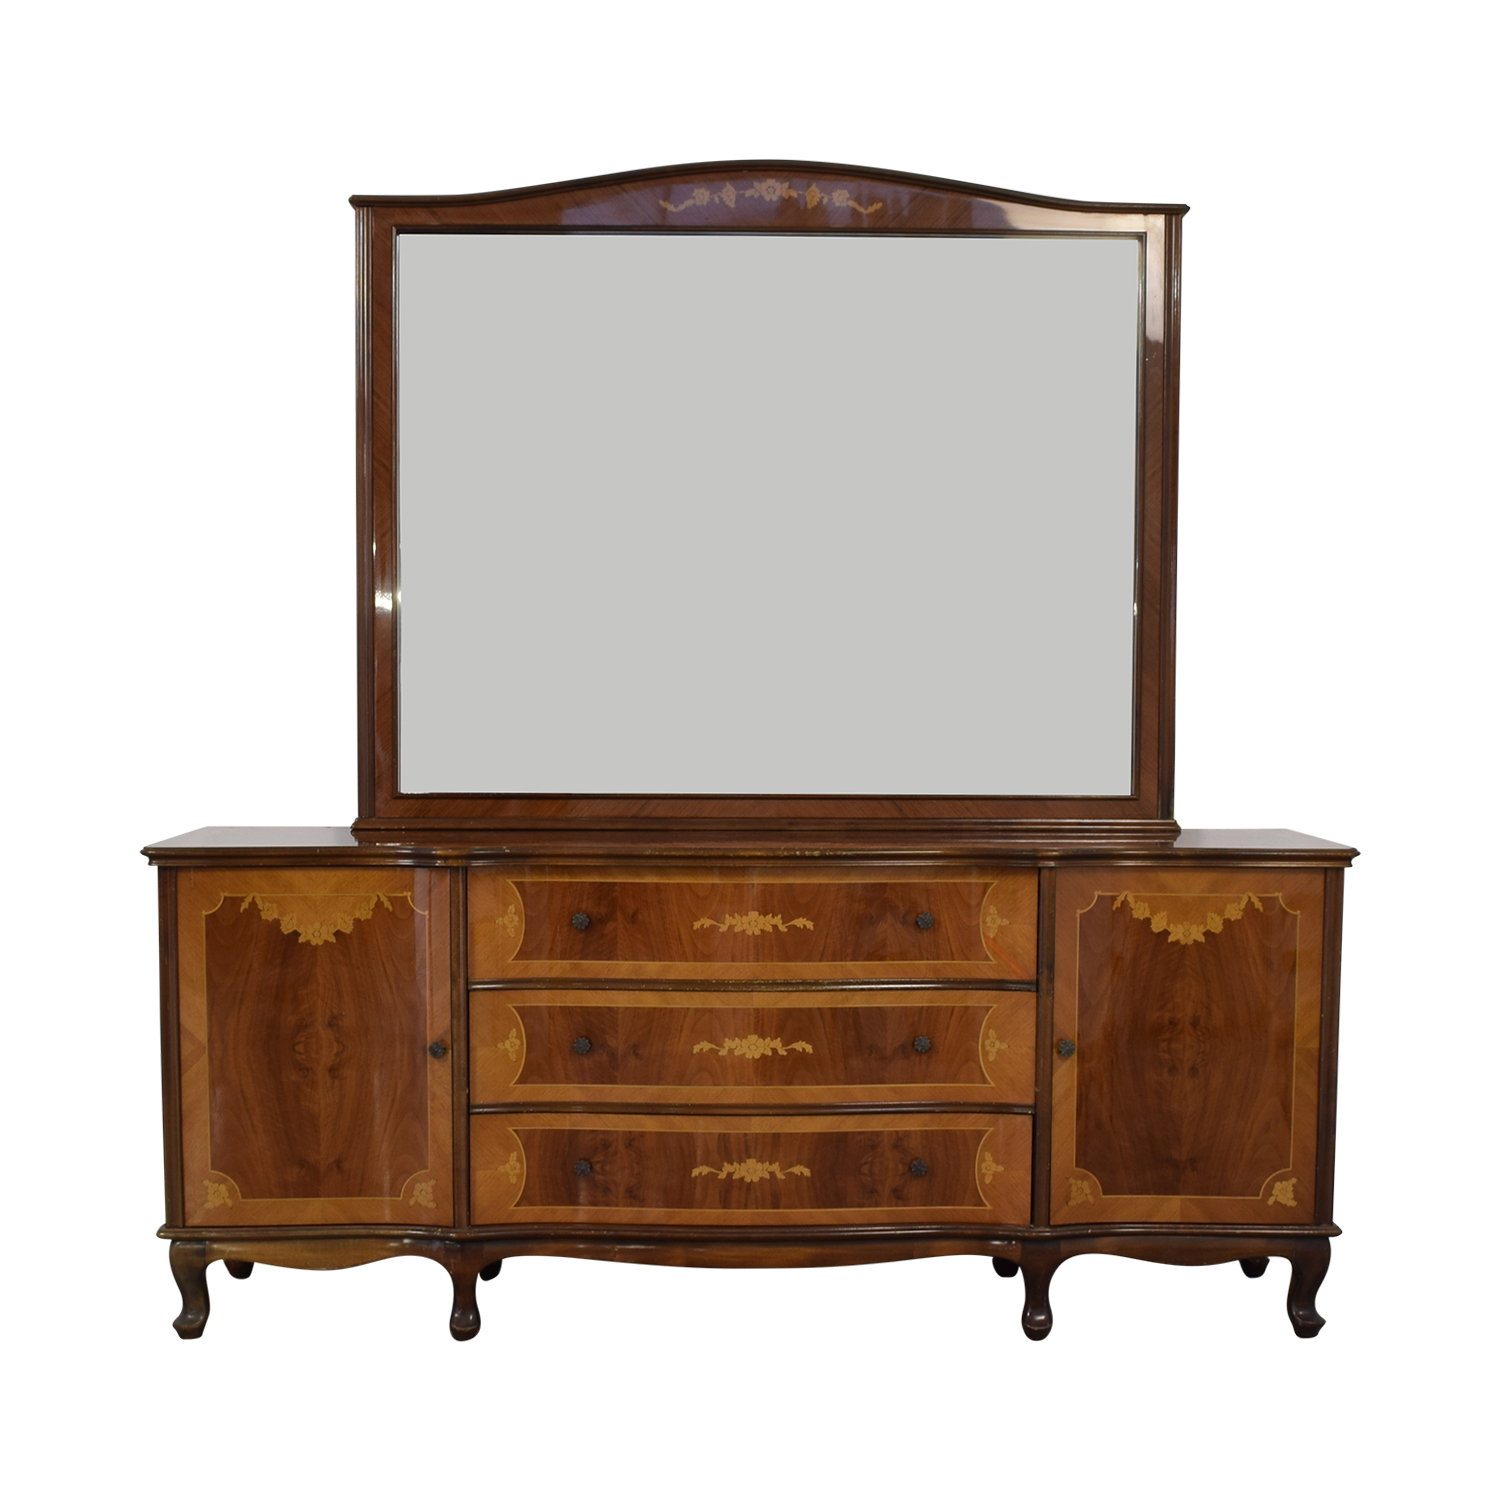 Roma Furniture Dresser with Mirror second hand